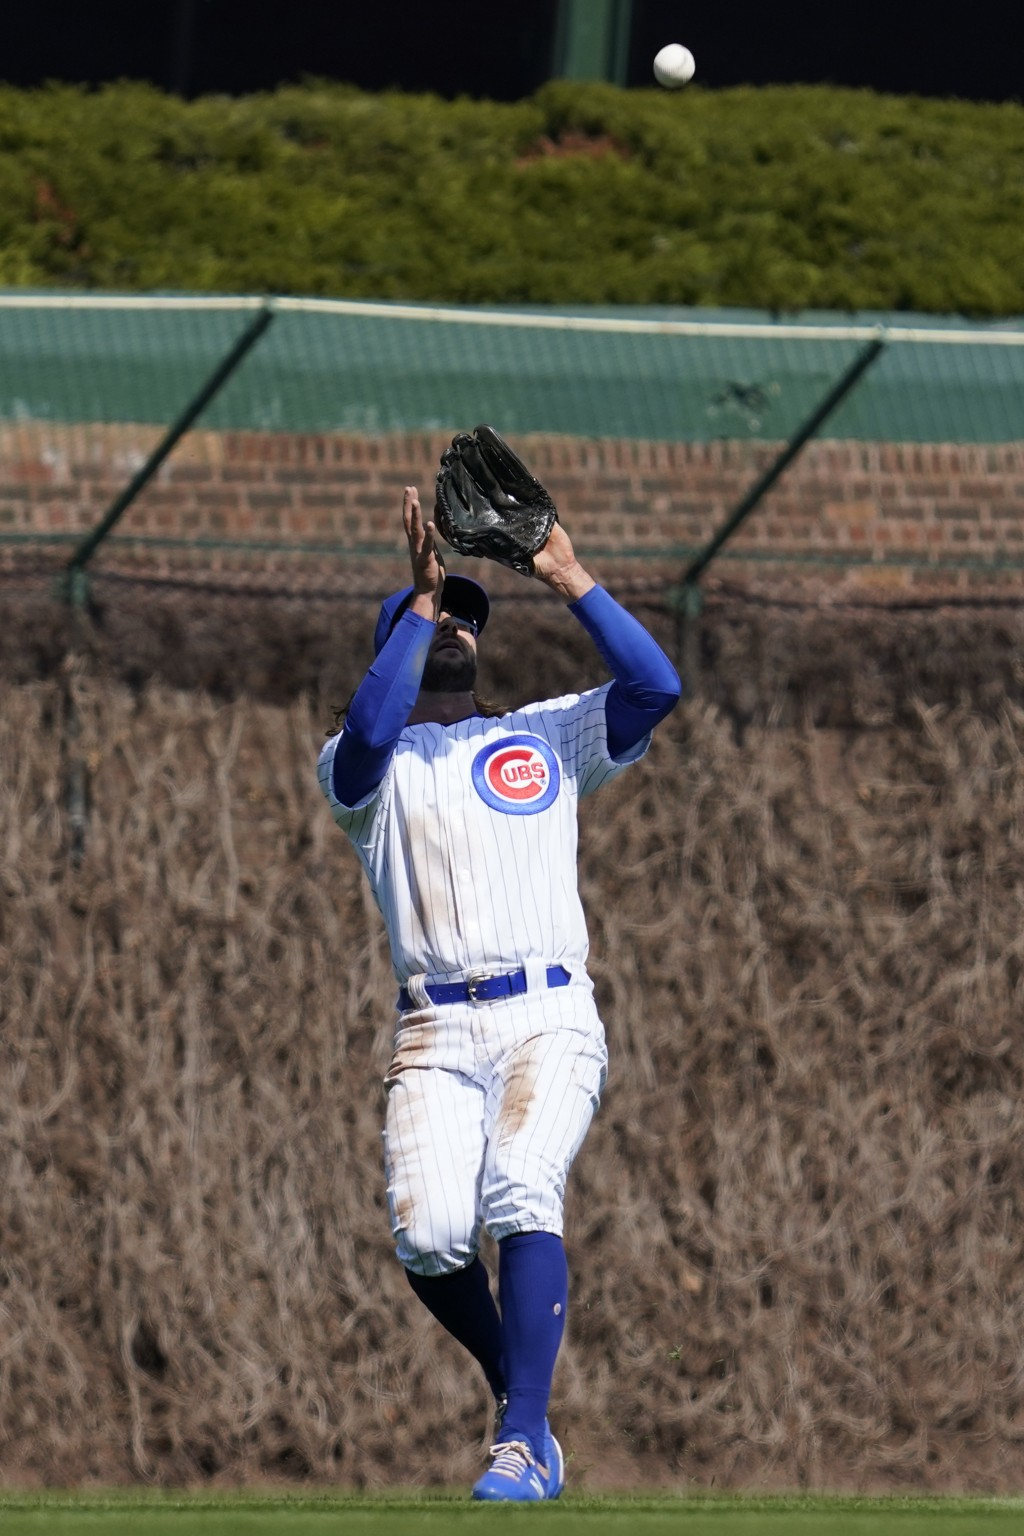 Chicago Cubs center fielder Jake Marisnick catches a fly ball by Pittsburgh Pirates' Adam Frazier during the third inning of a baseball game in Chicag...